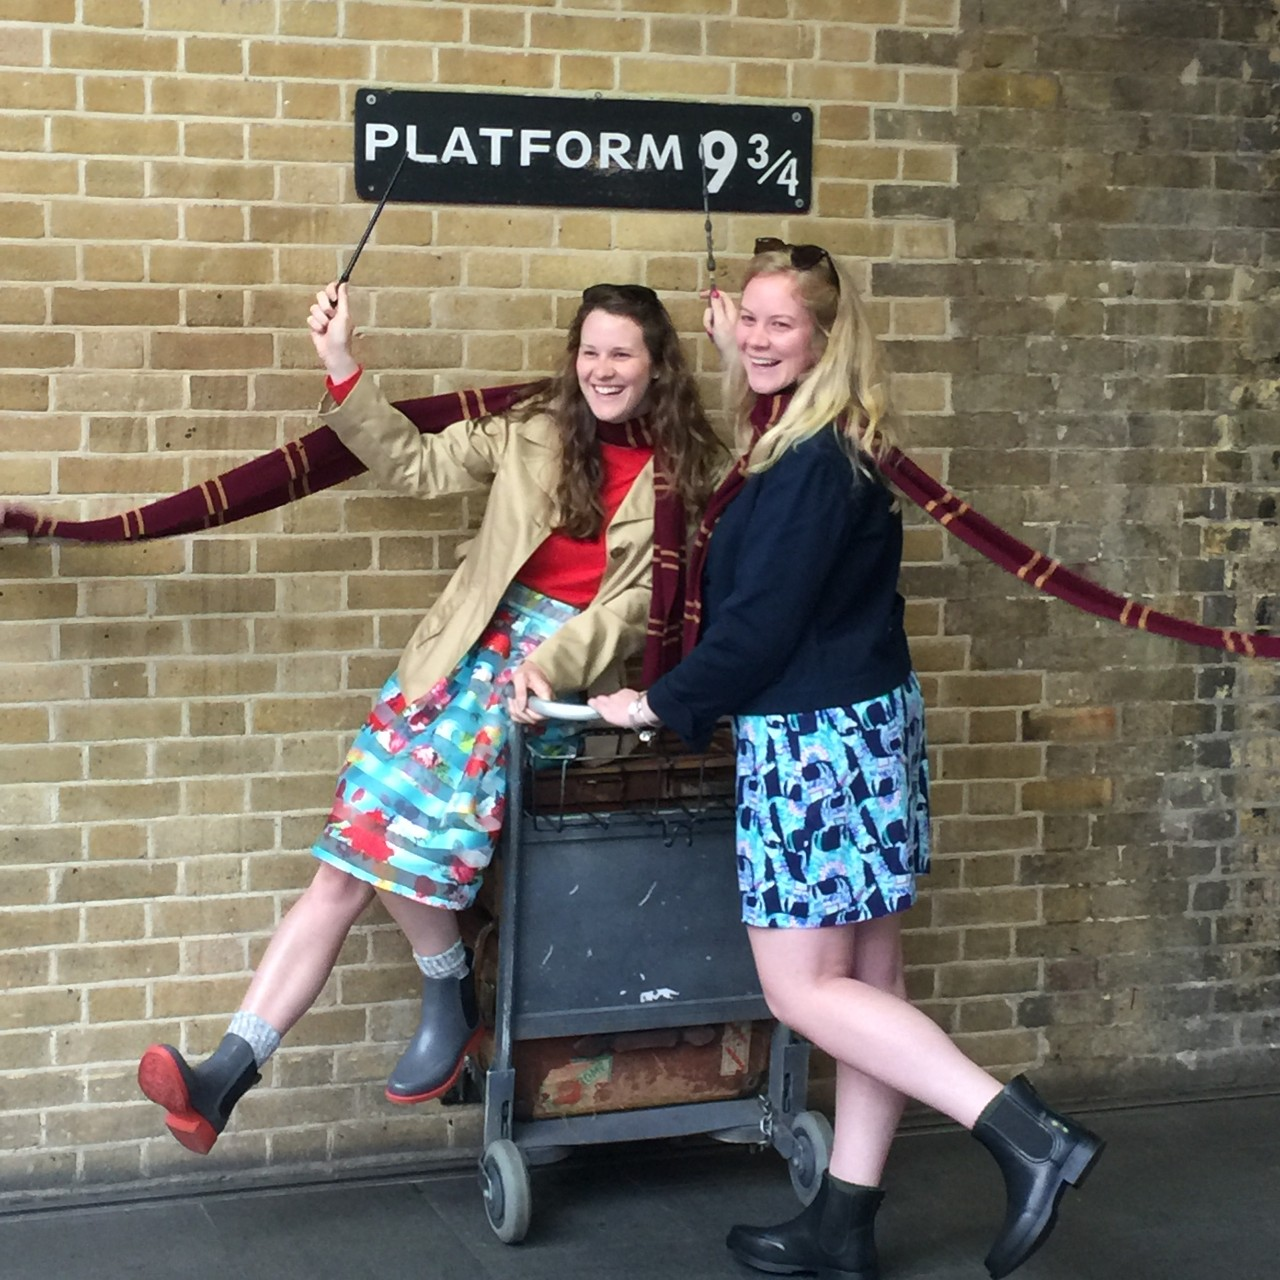 Two college women stand under a Platform 9 3/4 sign in London, England.